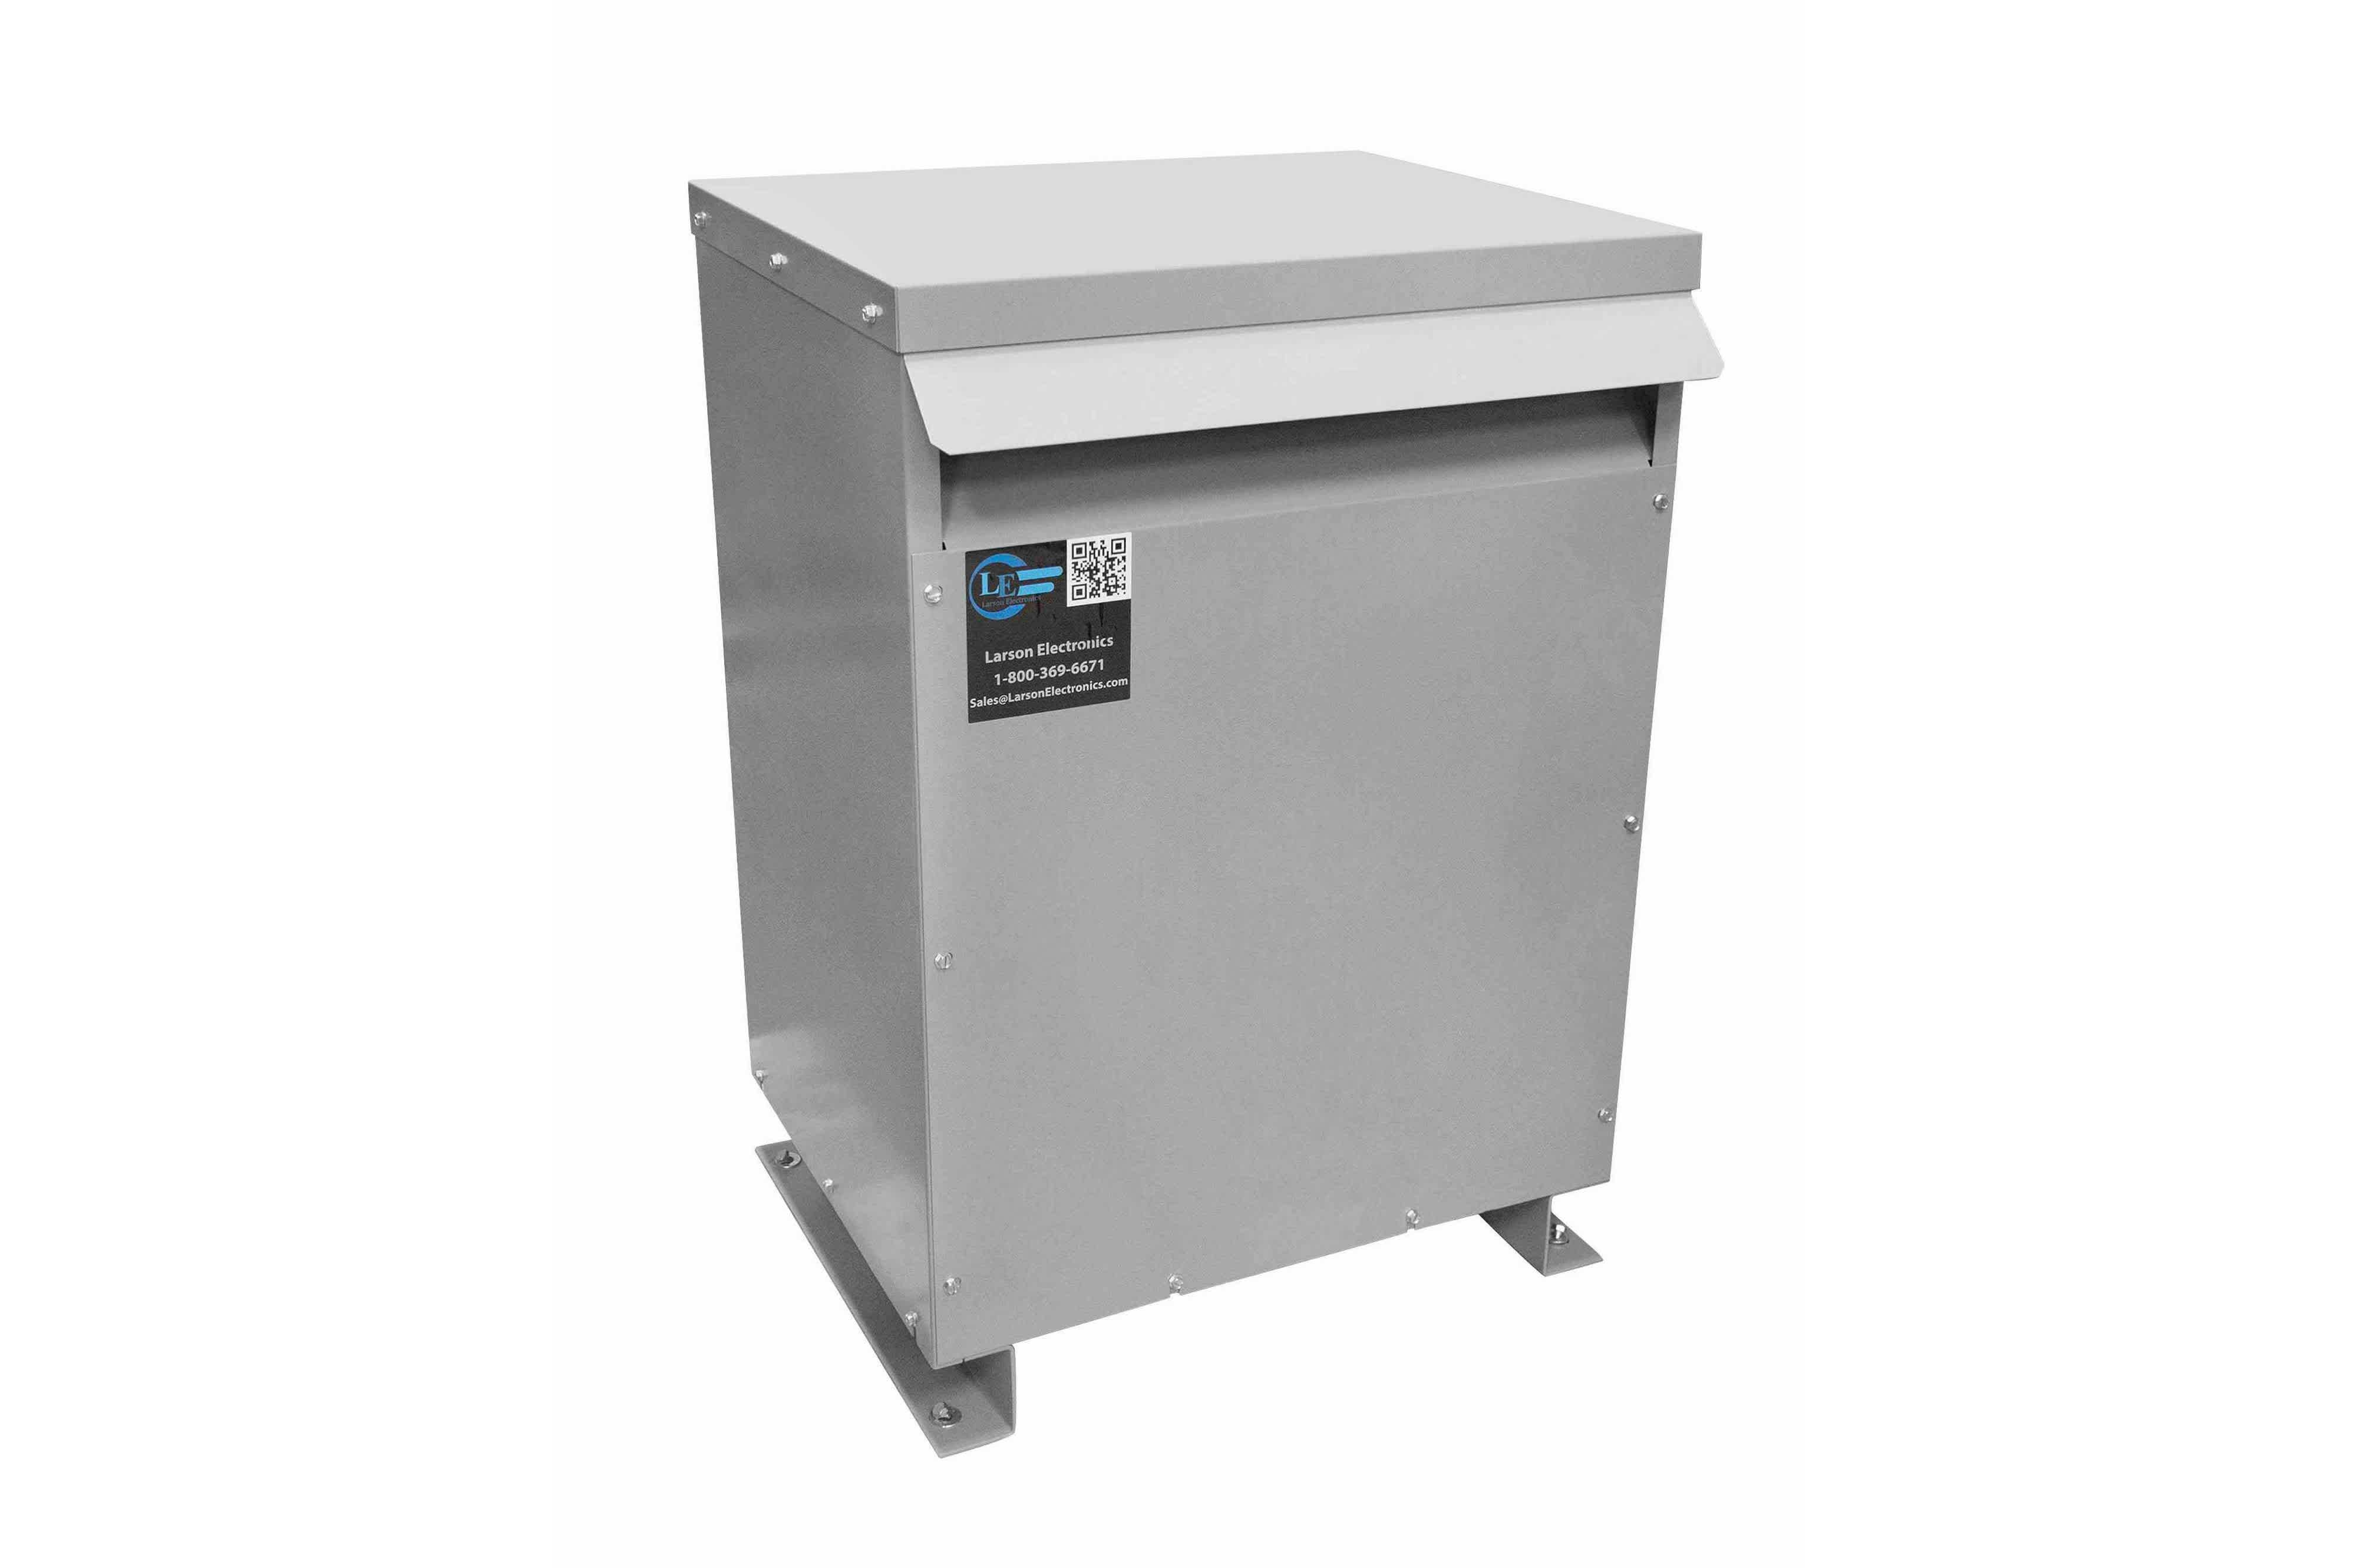 52.5 kVA 3PH Isolation Transformer, 600V Delta Primary, 400V Delta Secondary, N3R, Ventilated, 60 Hz